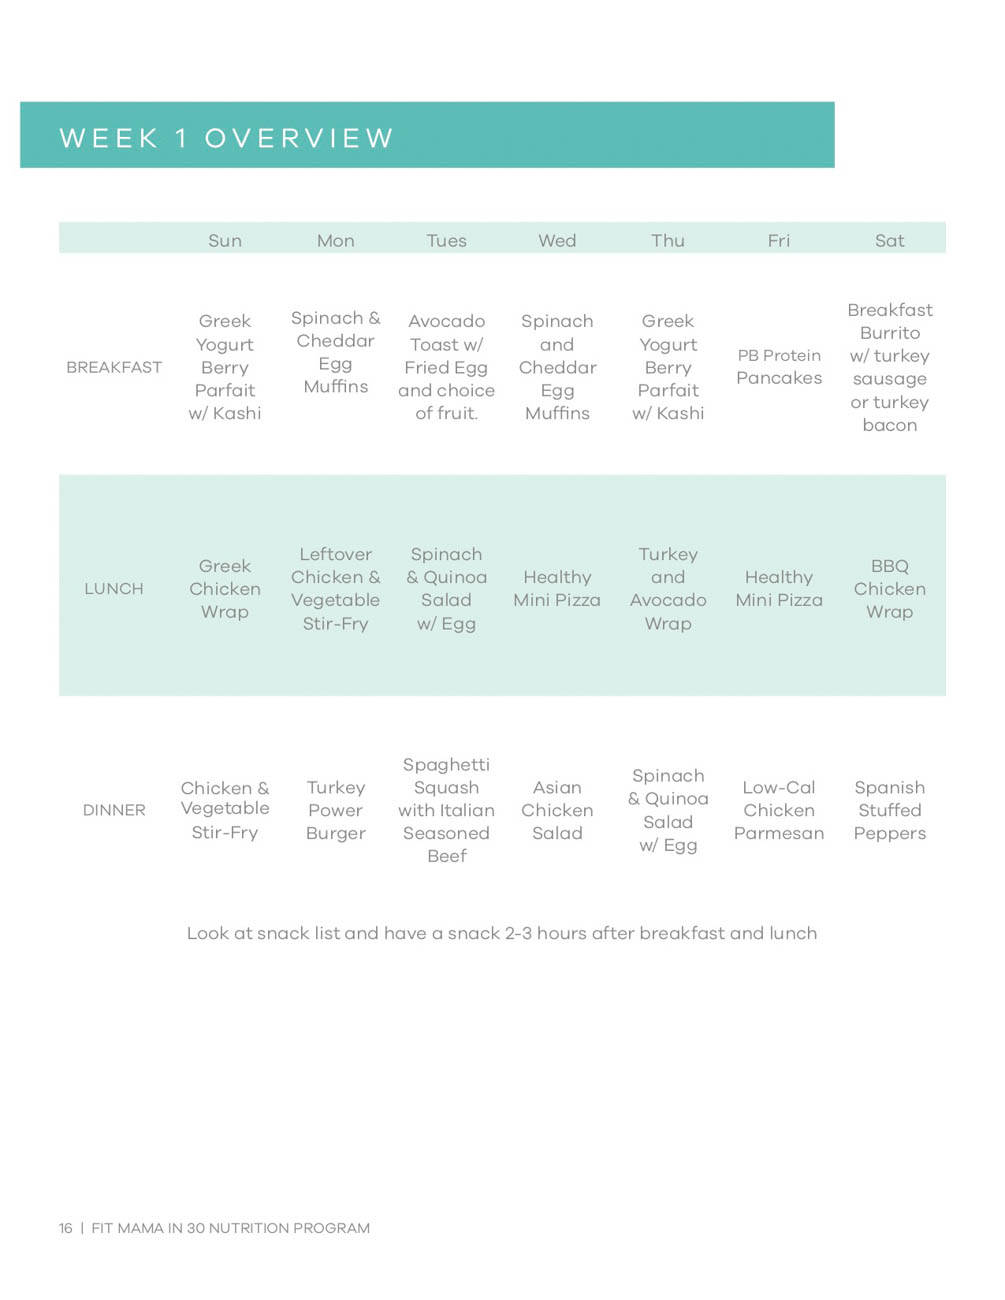 An example of a Fit Mama in 30 Weekly Meal Guide / Image courtesy of Fit Mama in 30 // Published: 6.15.19